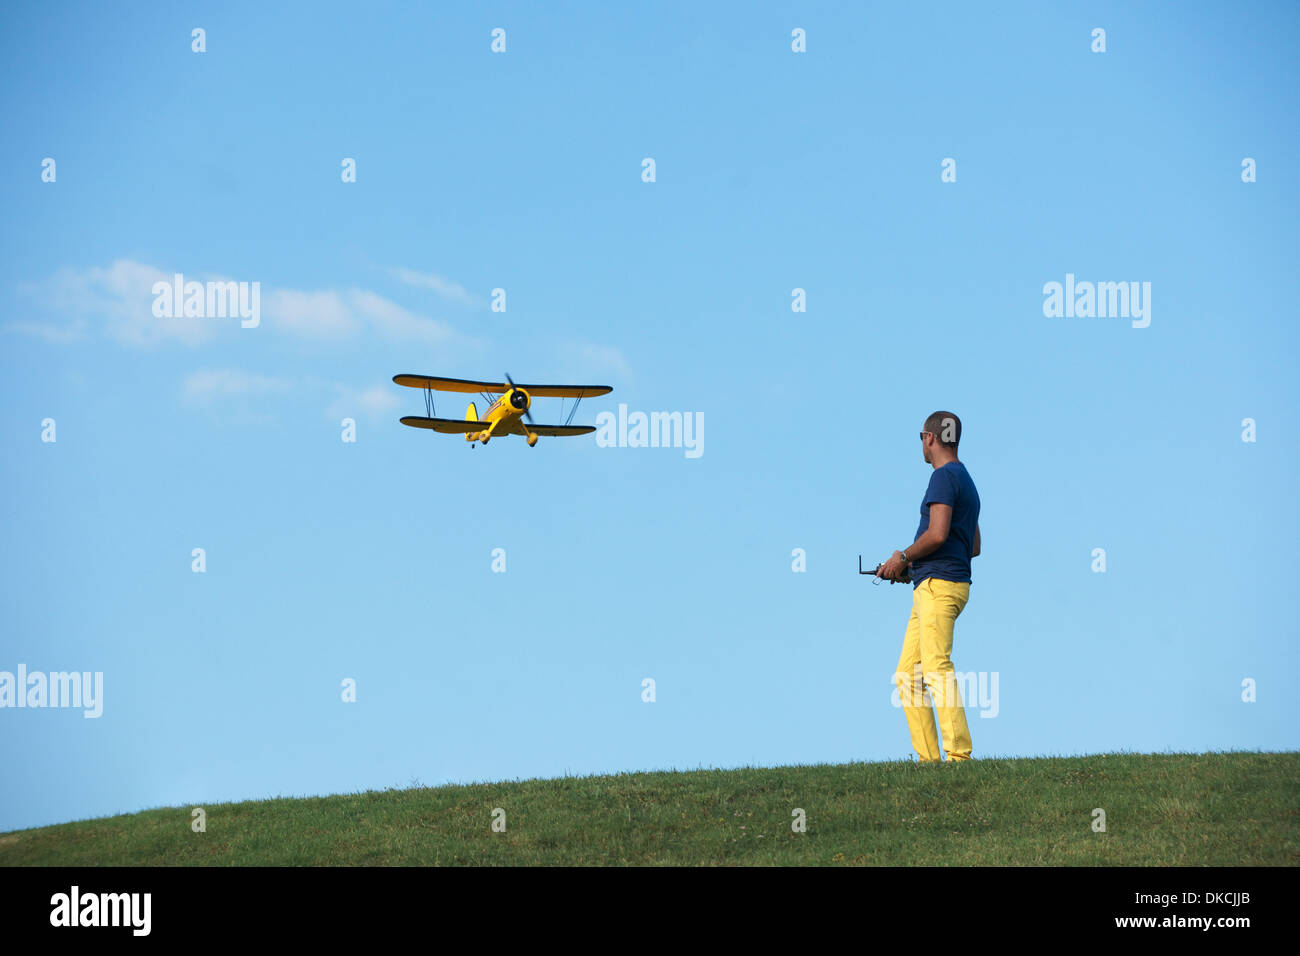 Man flying model plane - Stock Image